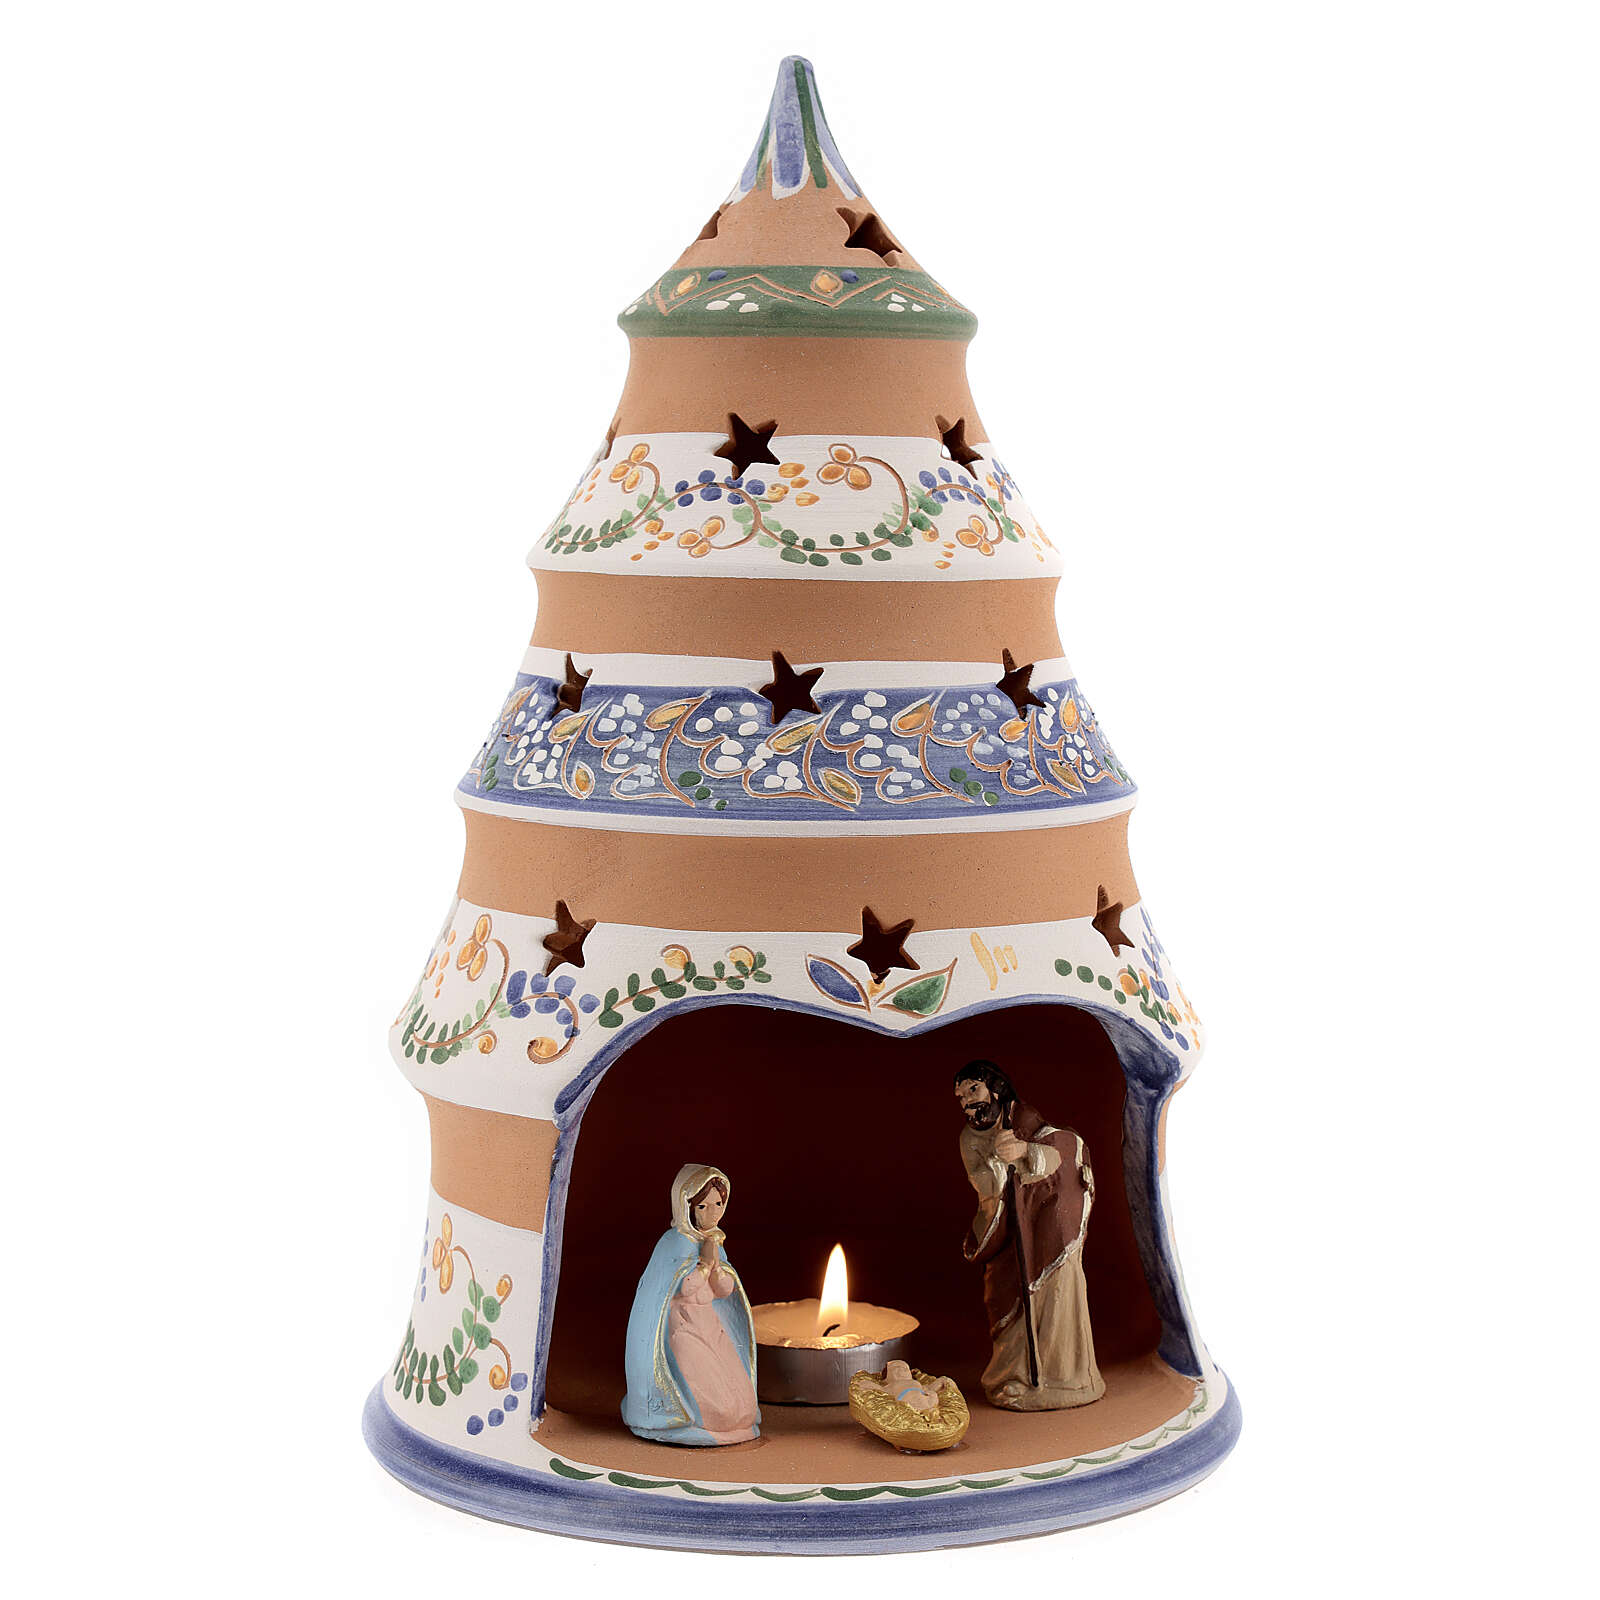 Tree tealight Nativity in natural Deruta teracotta country style 25 cm 4